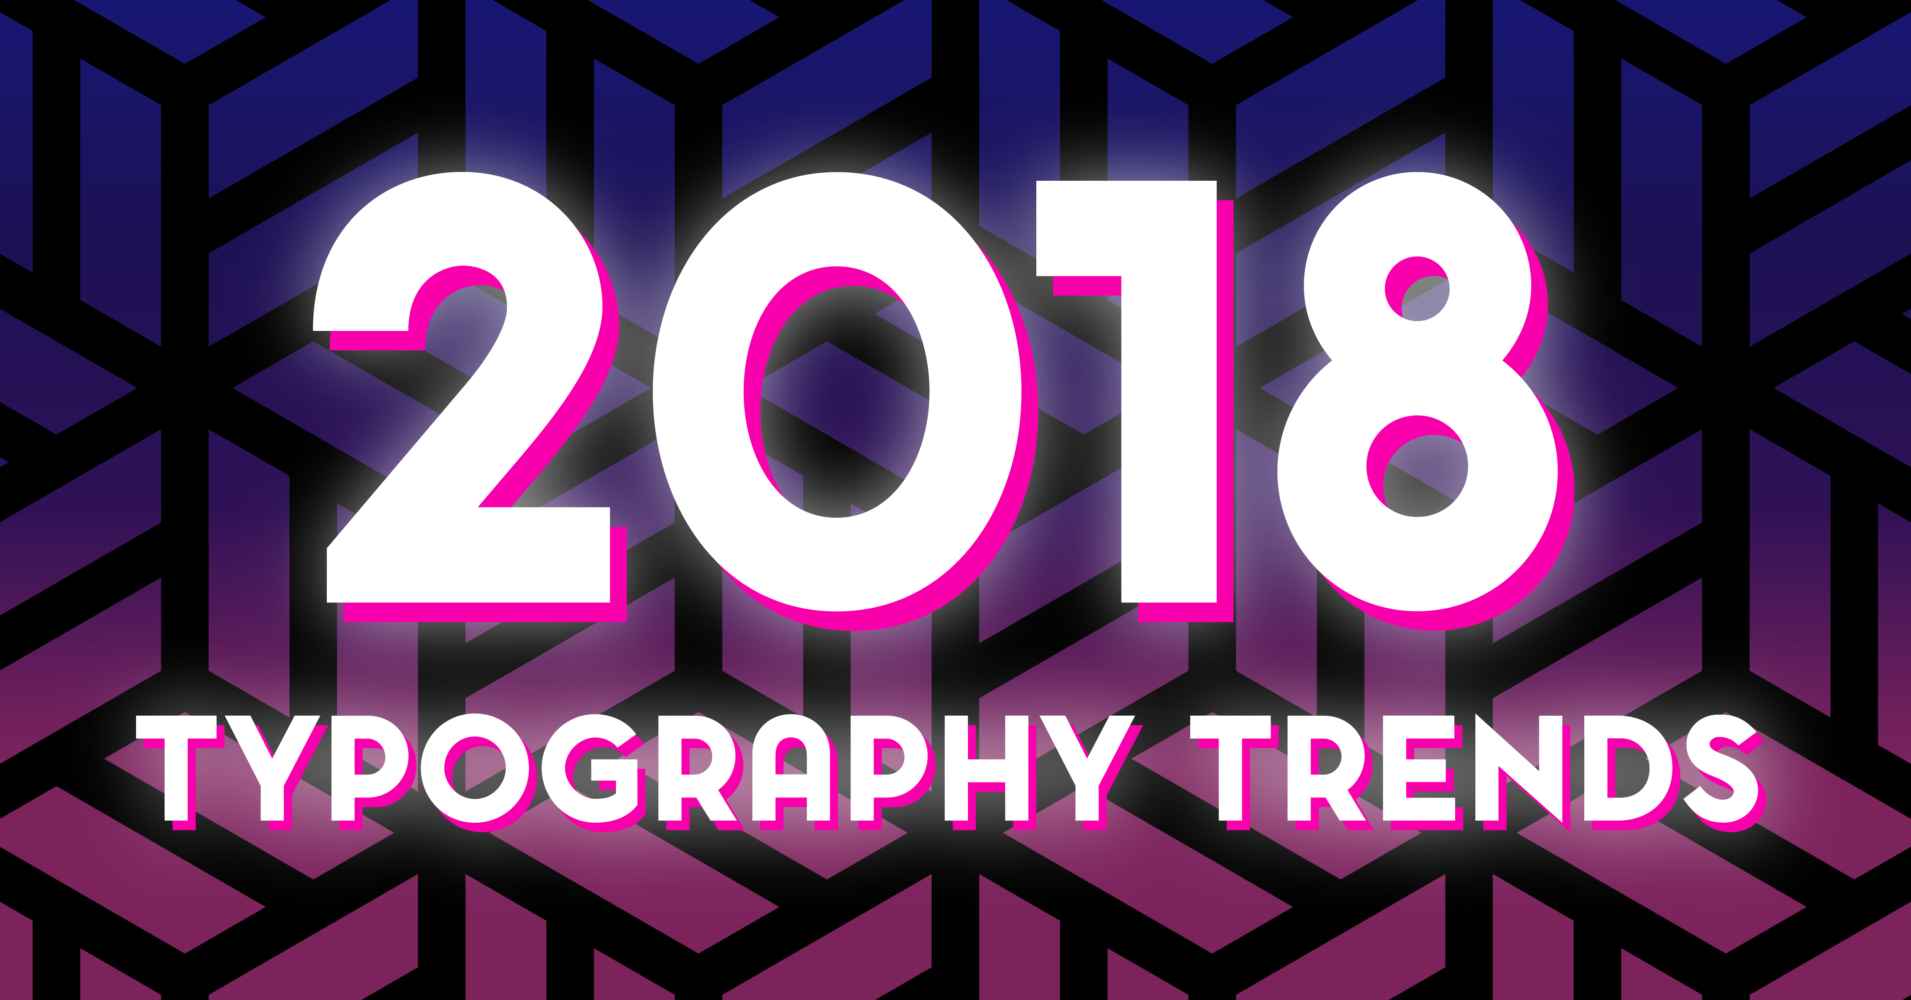 Top Typography Trends of 2018 for Social Media & Branding